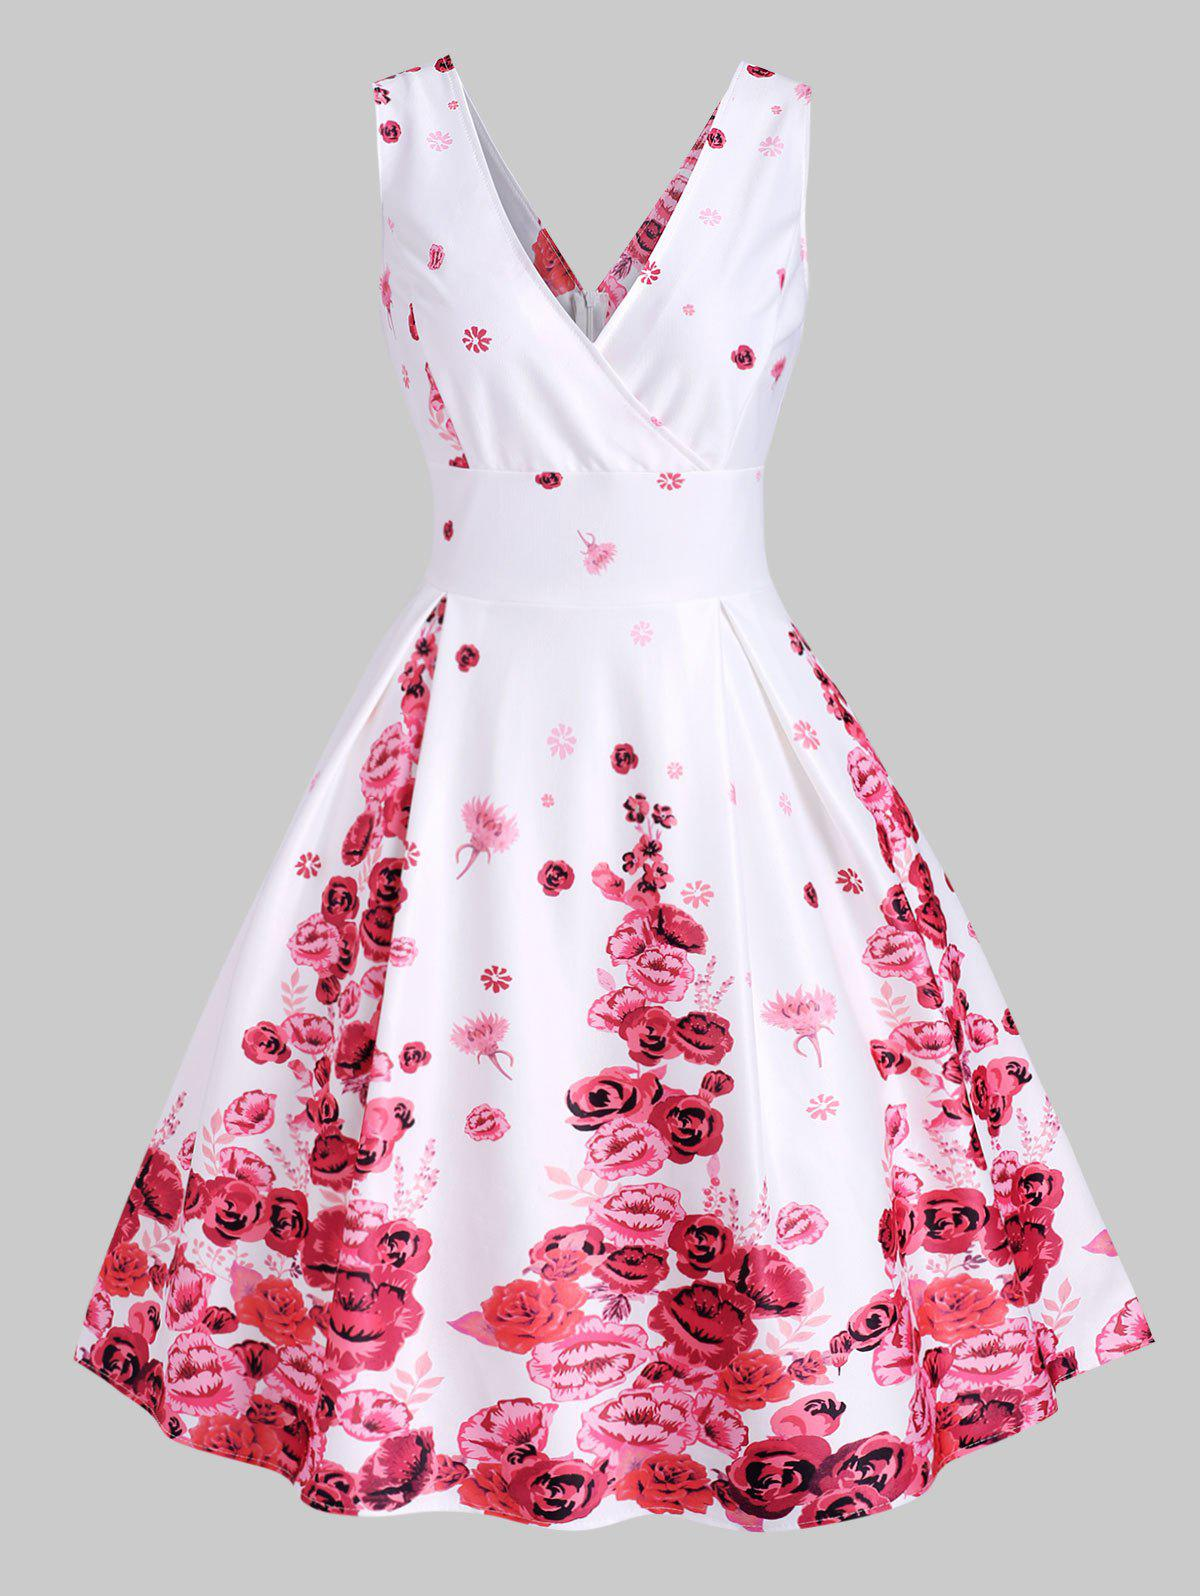 Chic Floral Print Empire Waist Plunging Dress